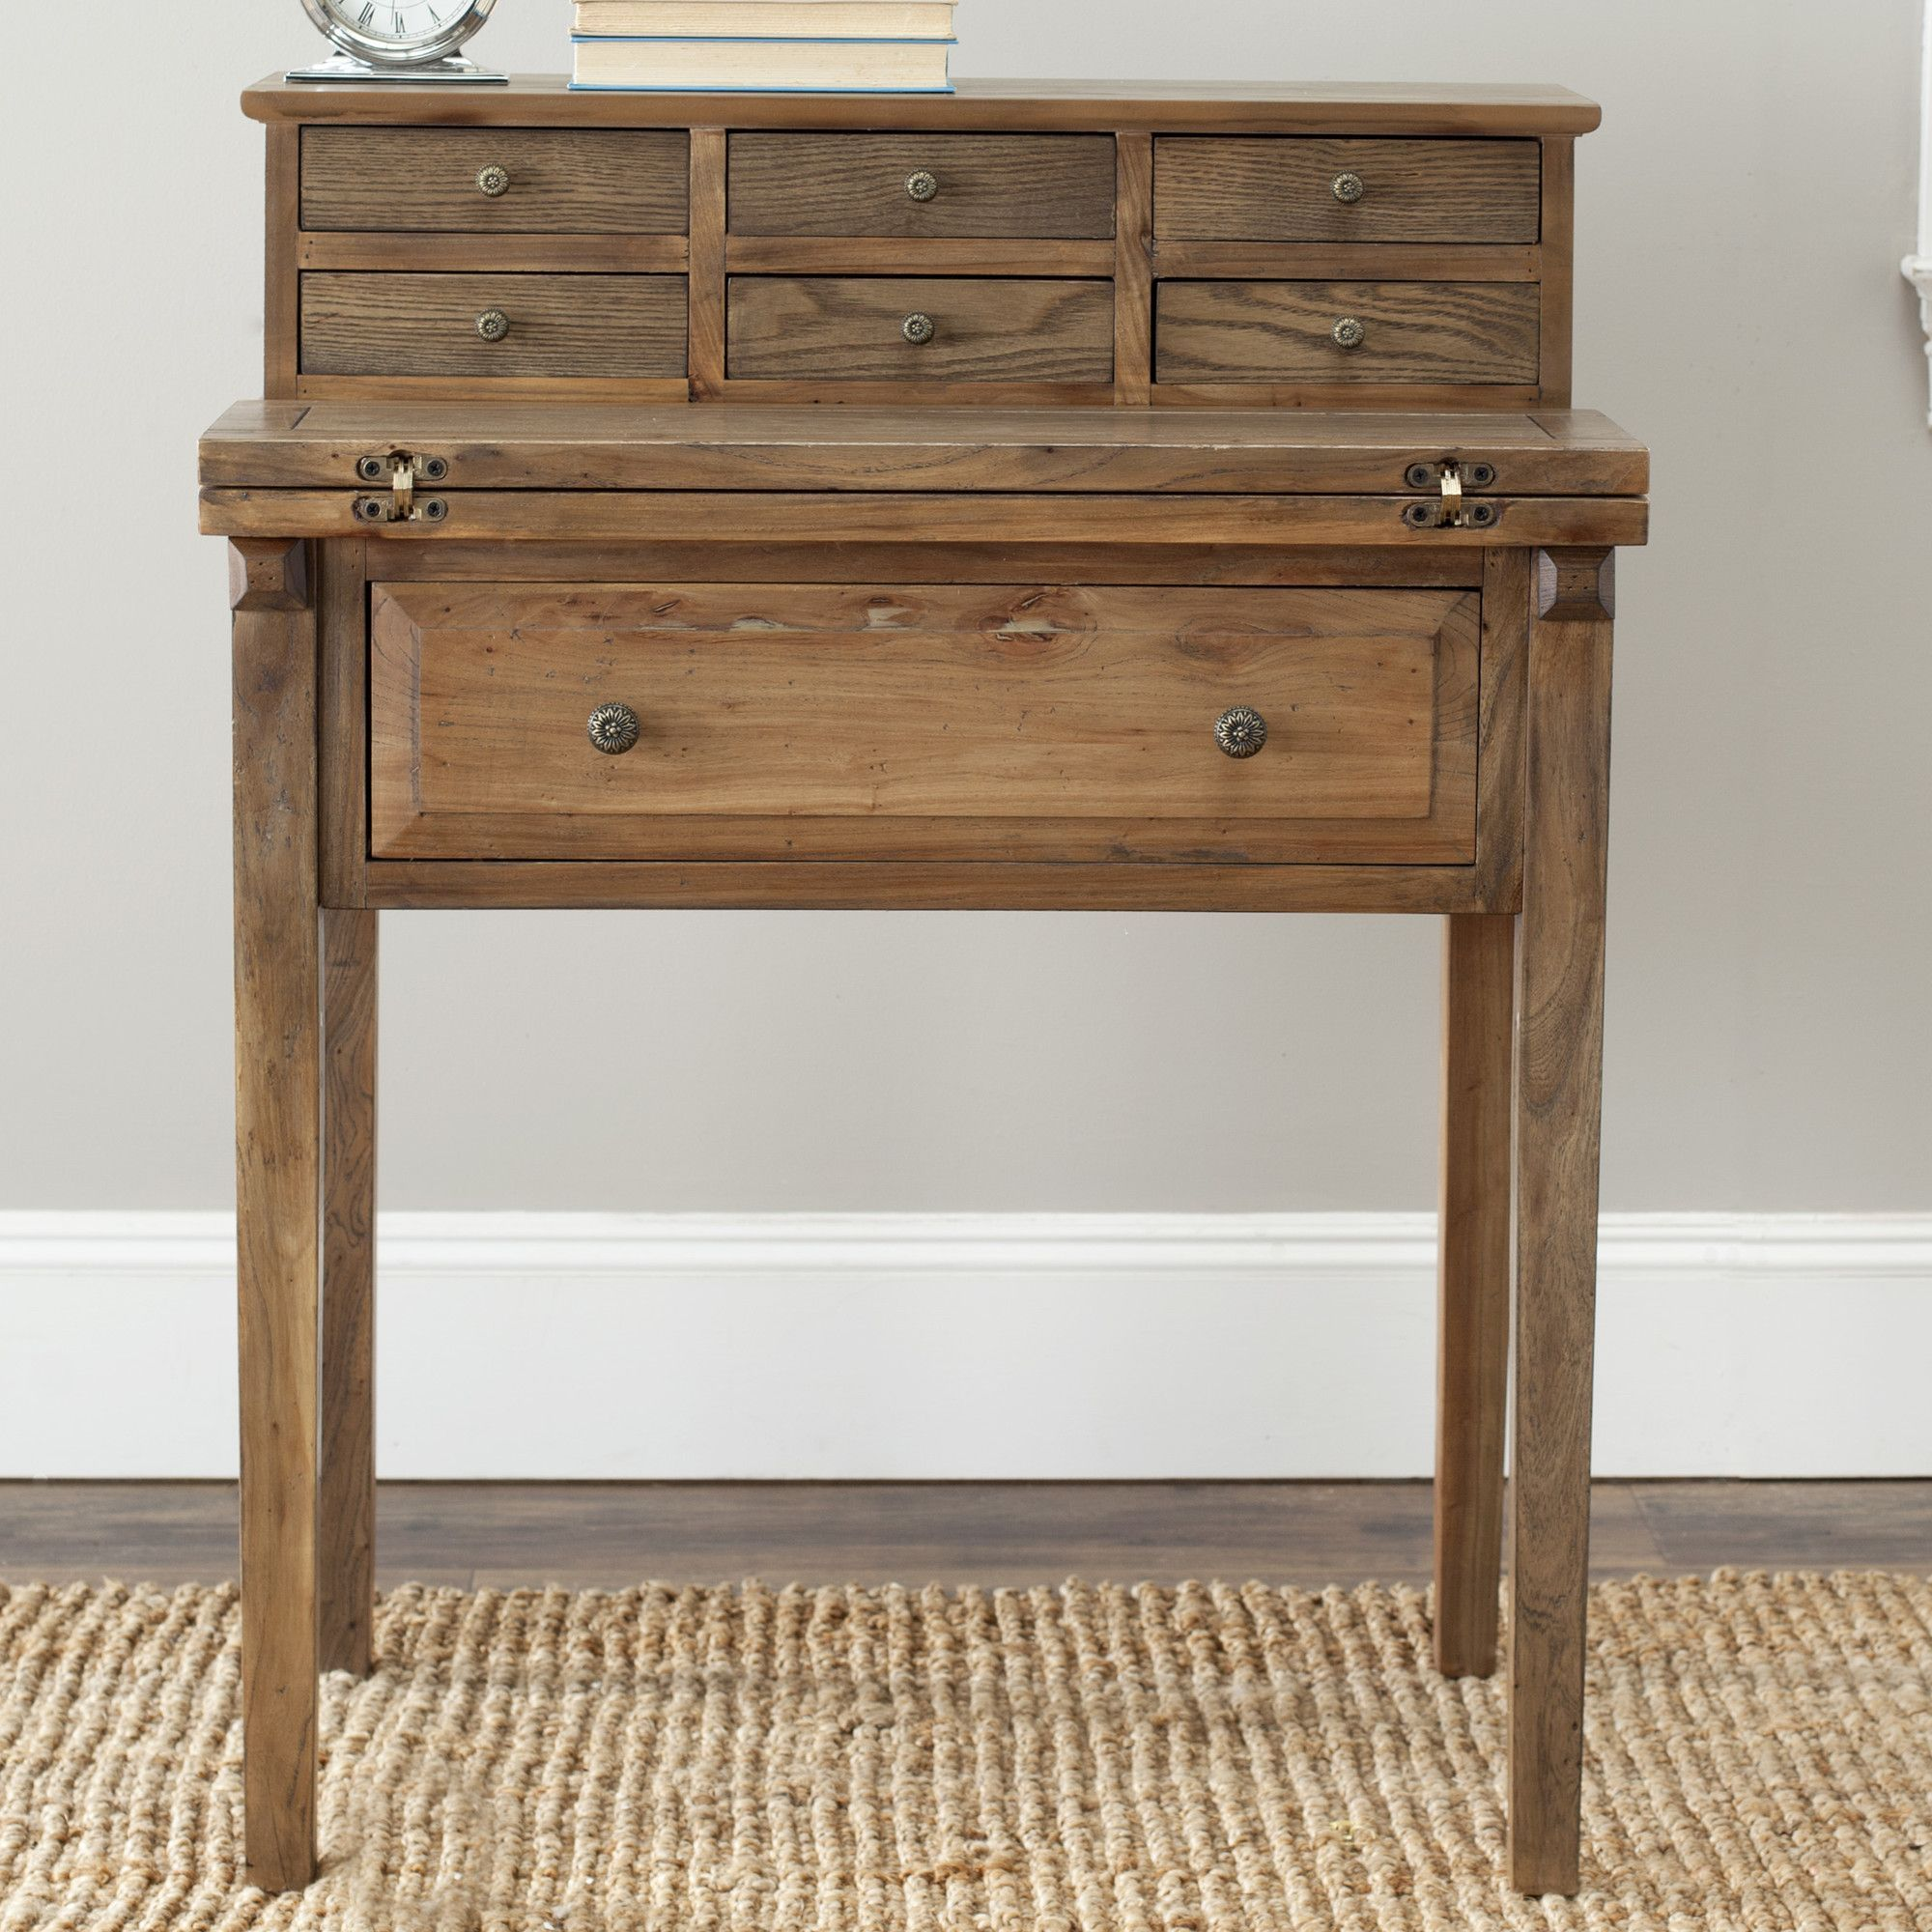 Features crafted of pine fold down style made for small spaces 7 drawers the drawers - Secretary desk for small spaces property ...